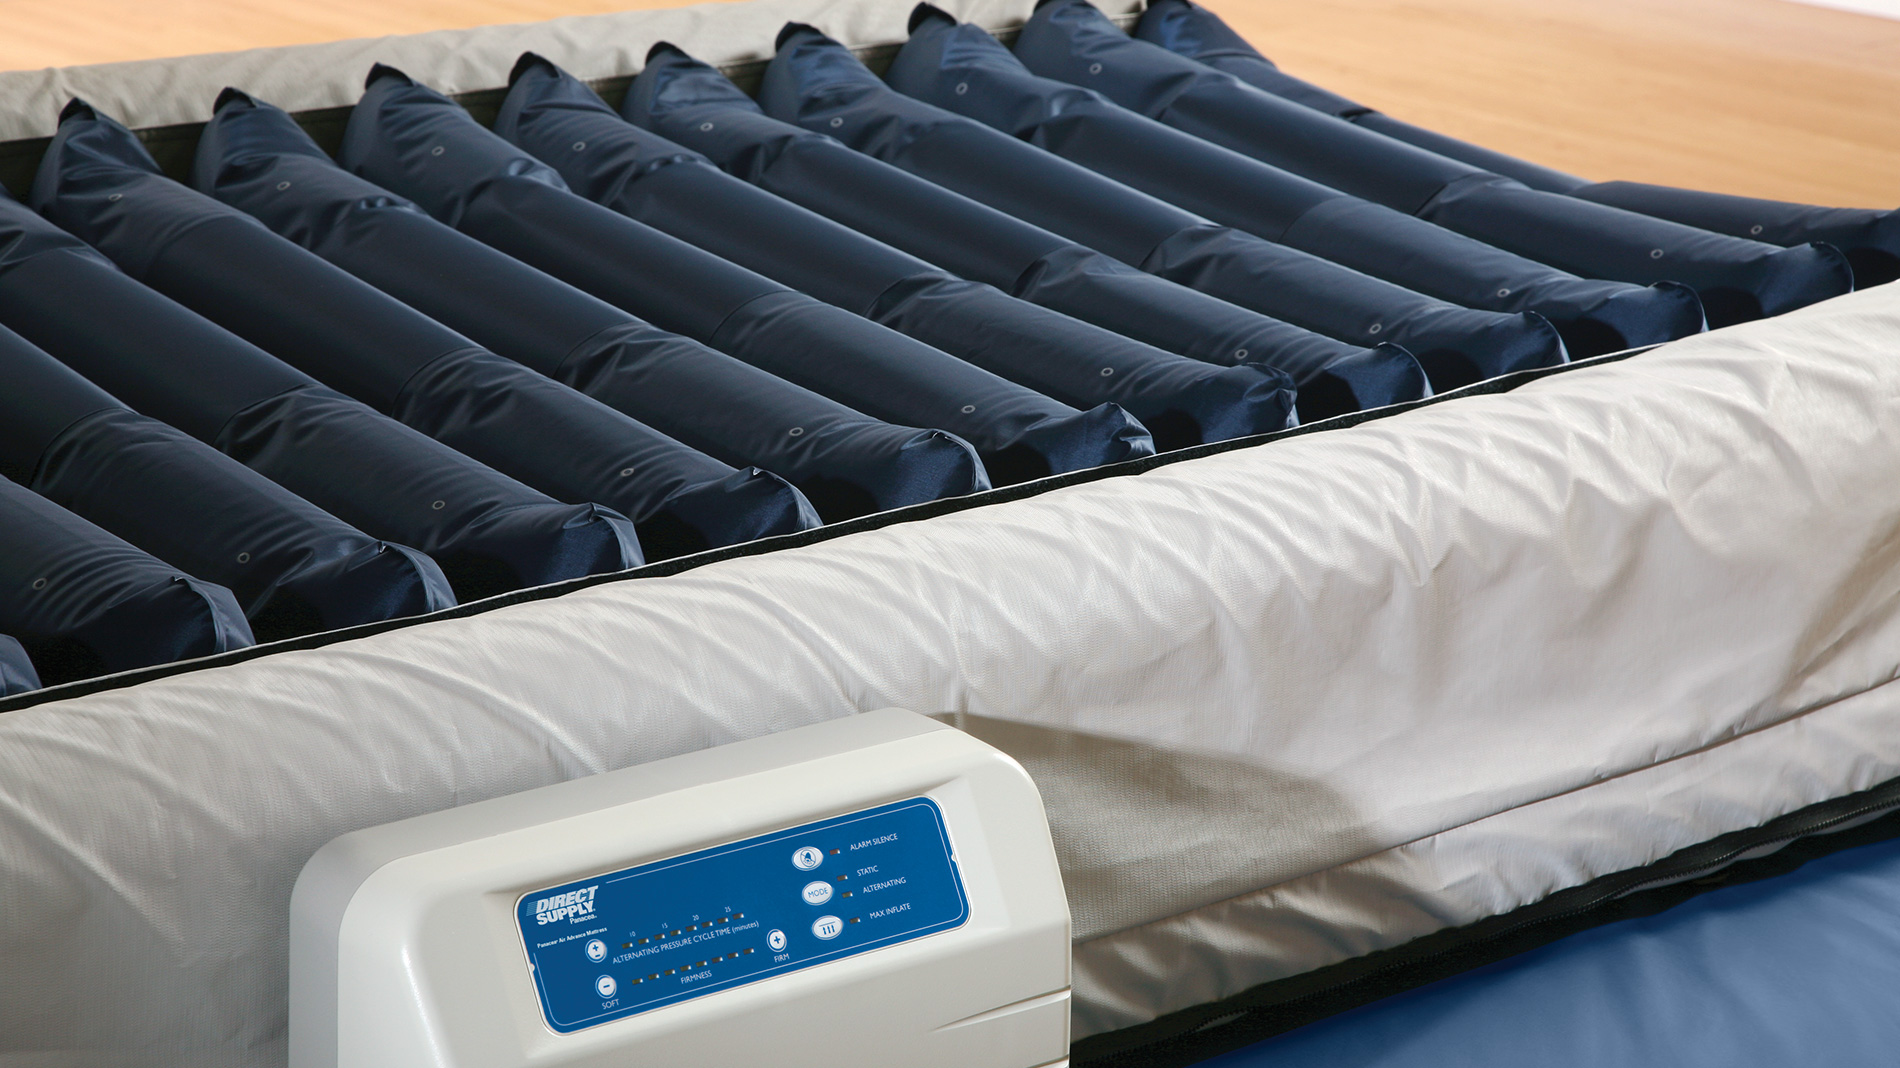 Find the Right Healthcare Air Mattresses for Your Patients' Needs